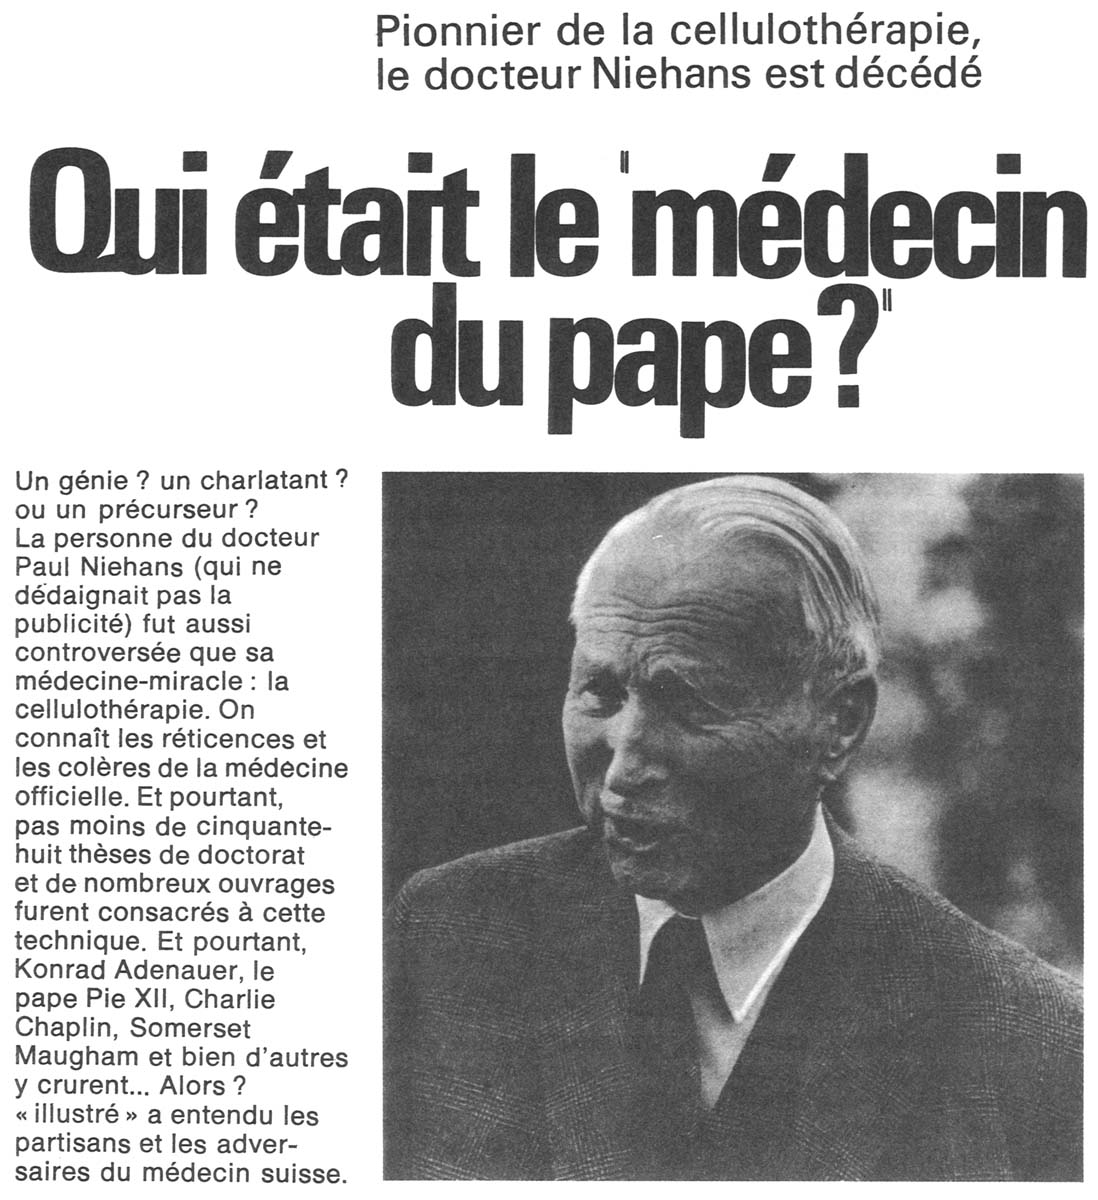 ILLUSTRÉ, September 9, 1971